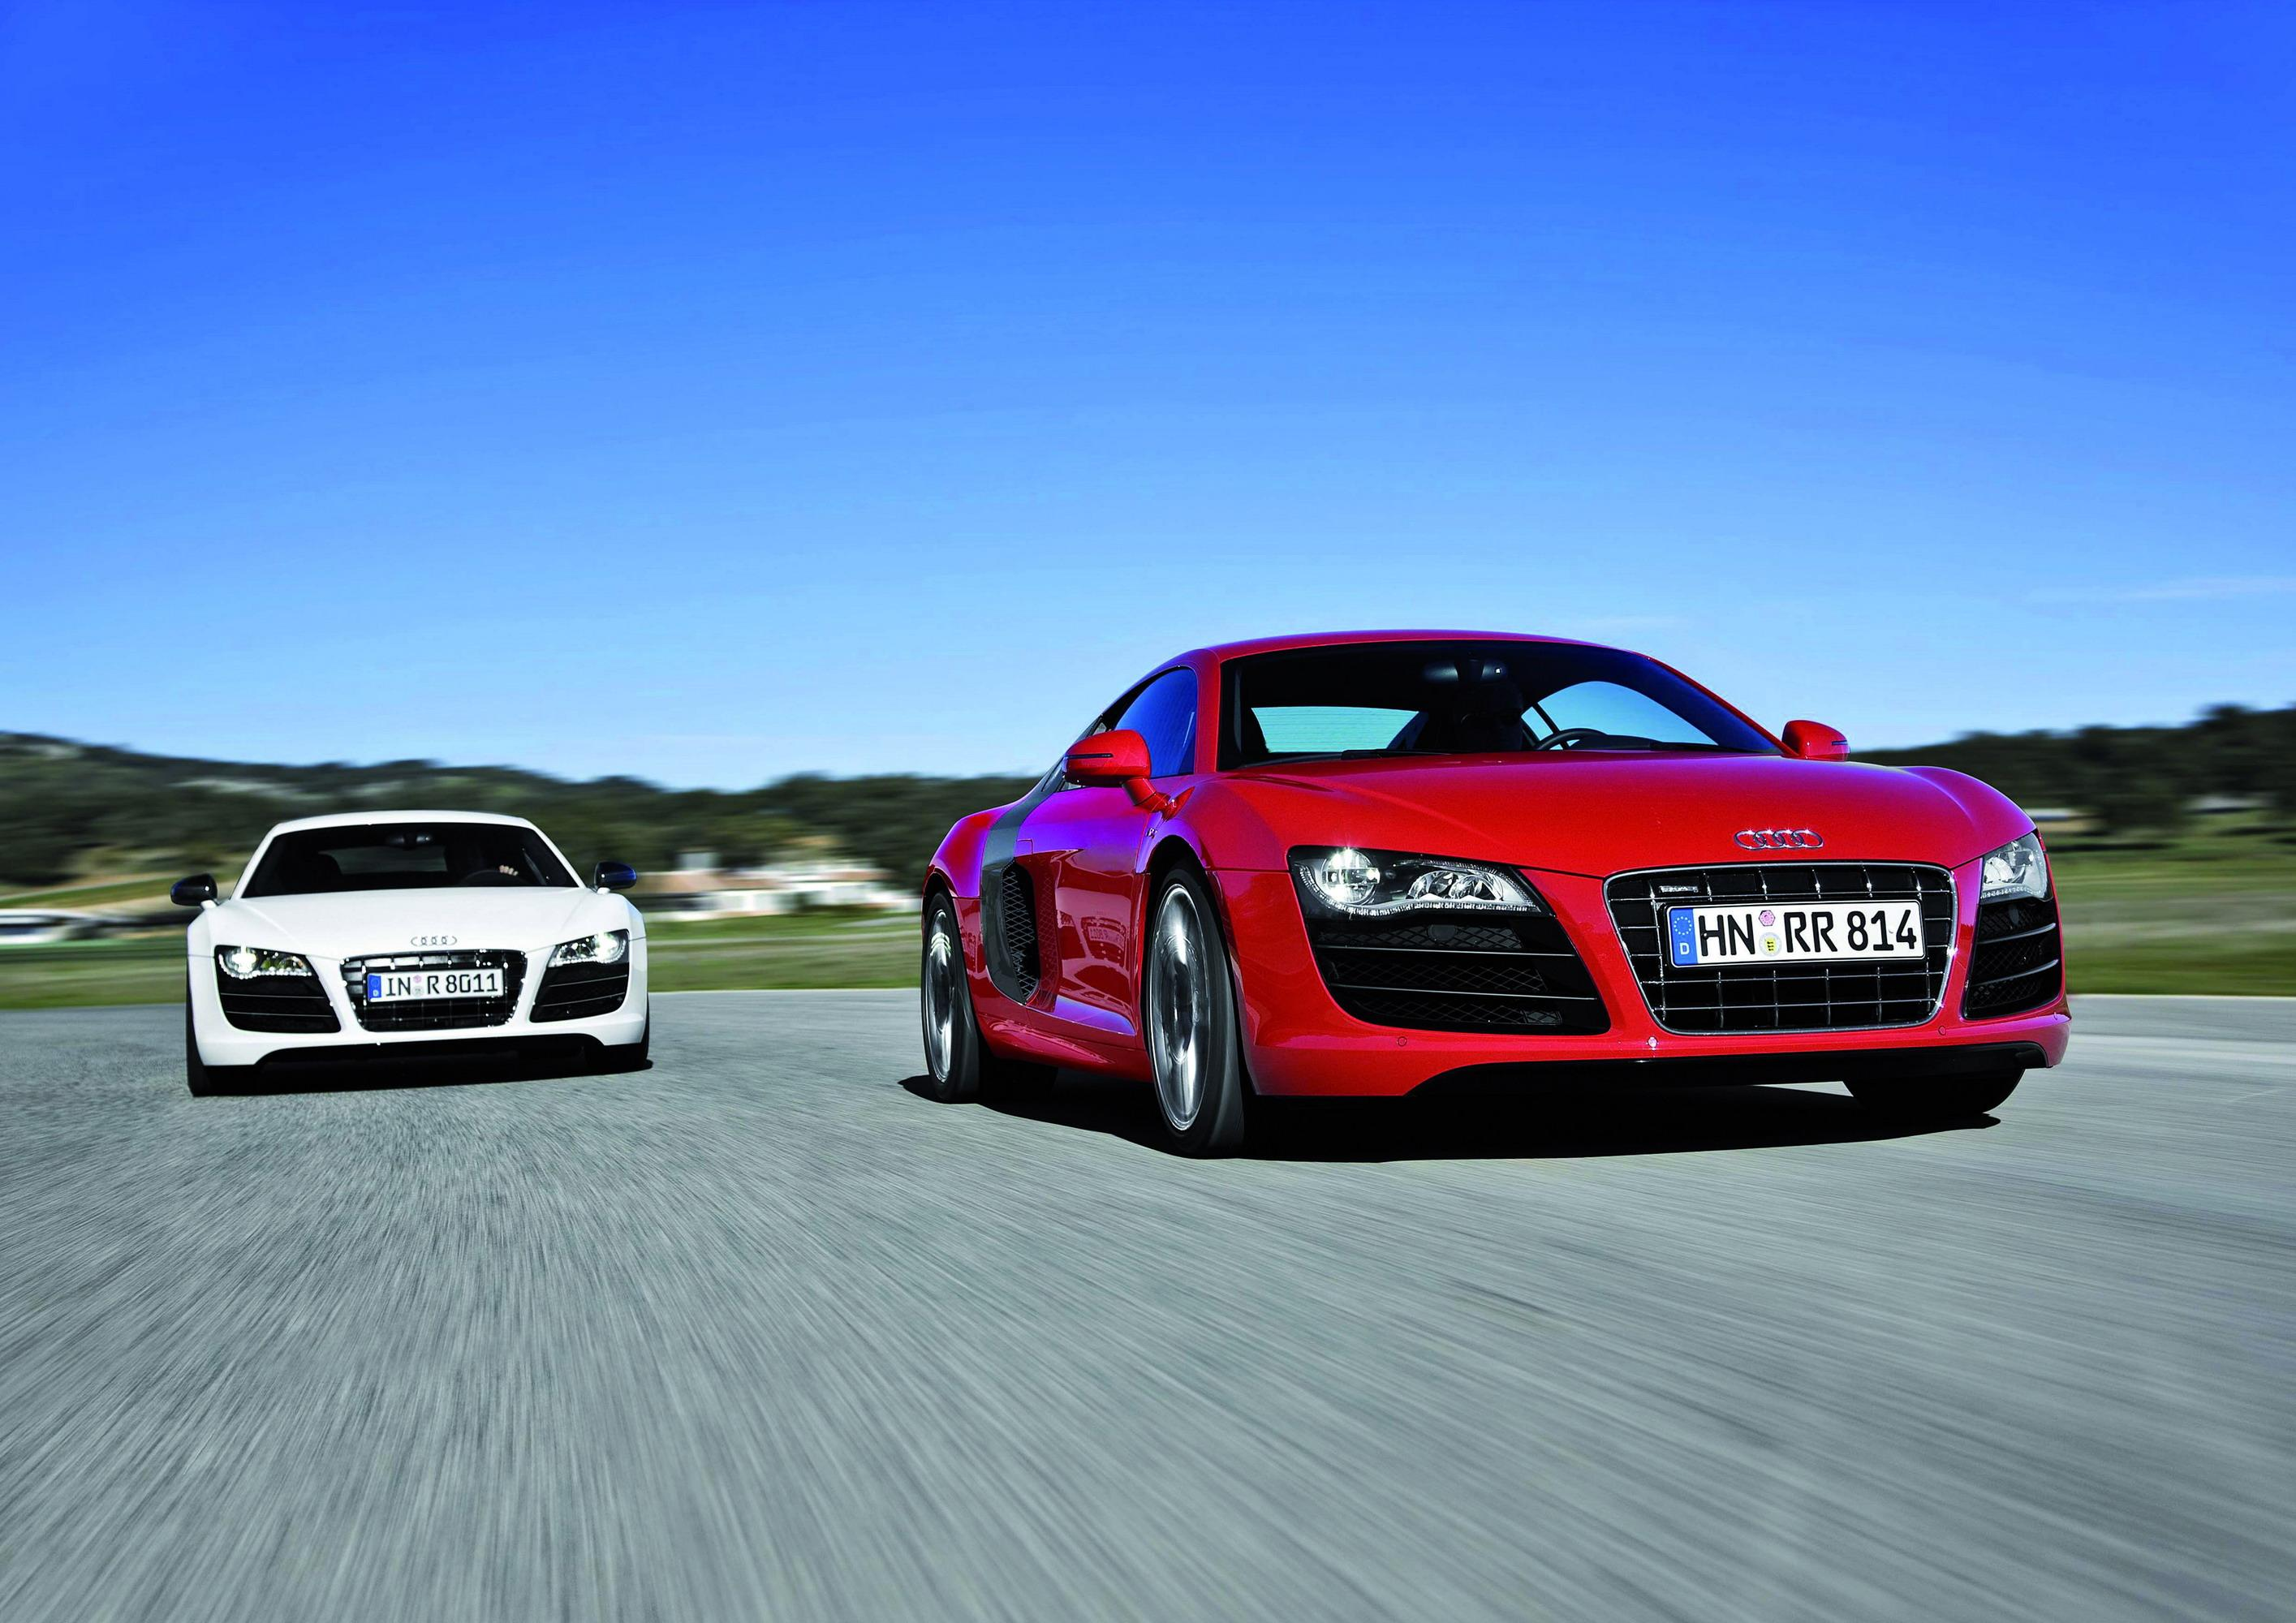 2010 Audi R8 V10 52 Fsi Top Speed Toyota Shows The Iroad A Fullyenclosed Tilting Electric Three